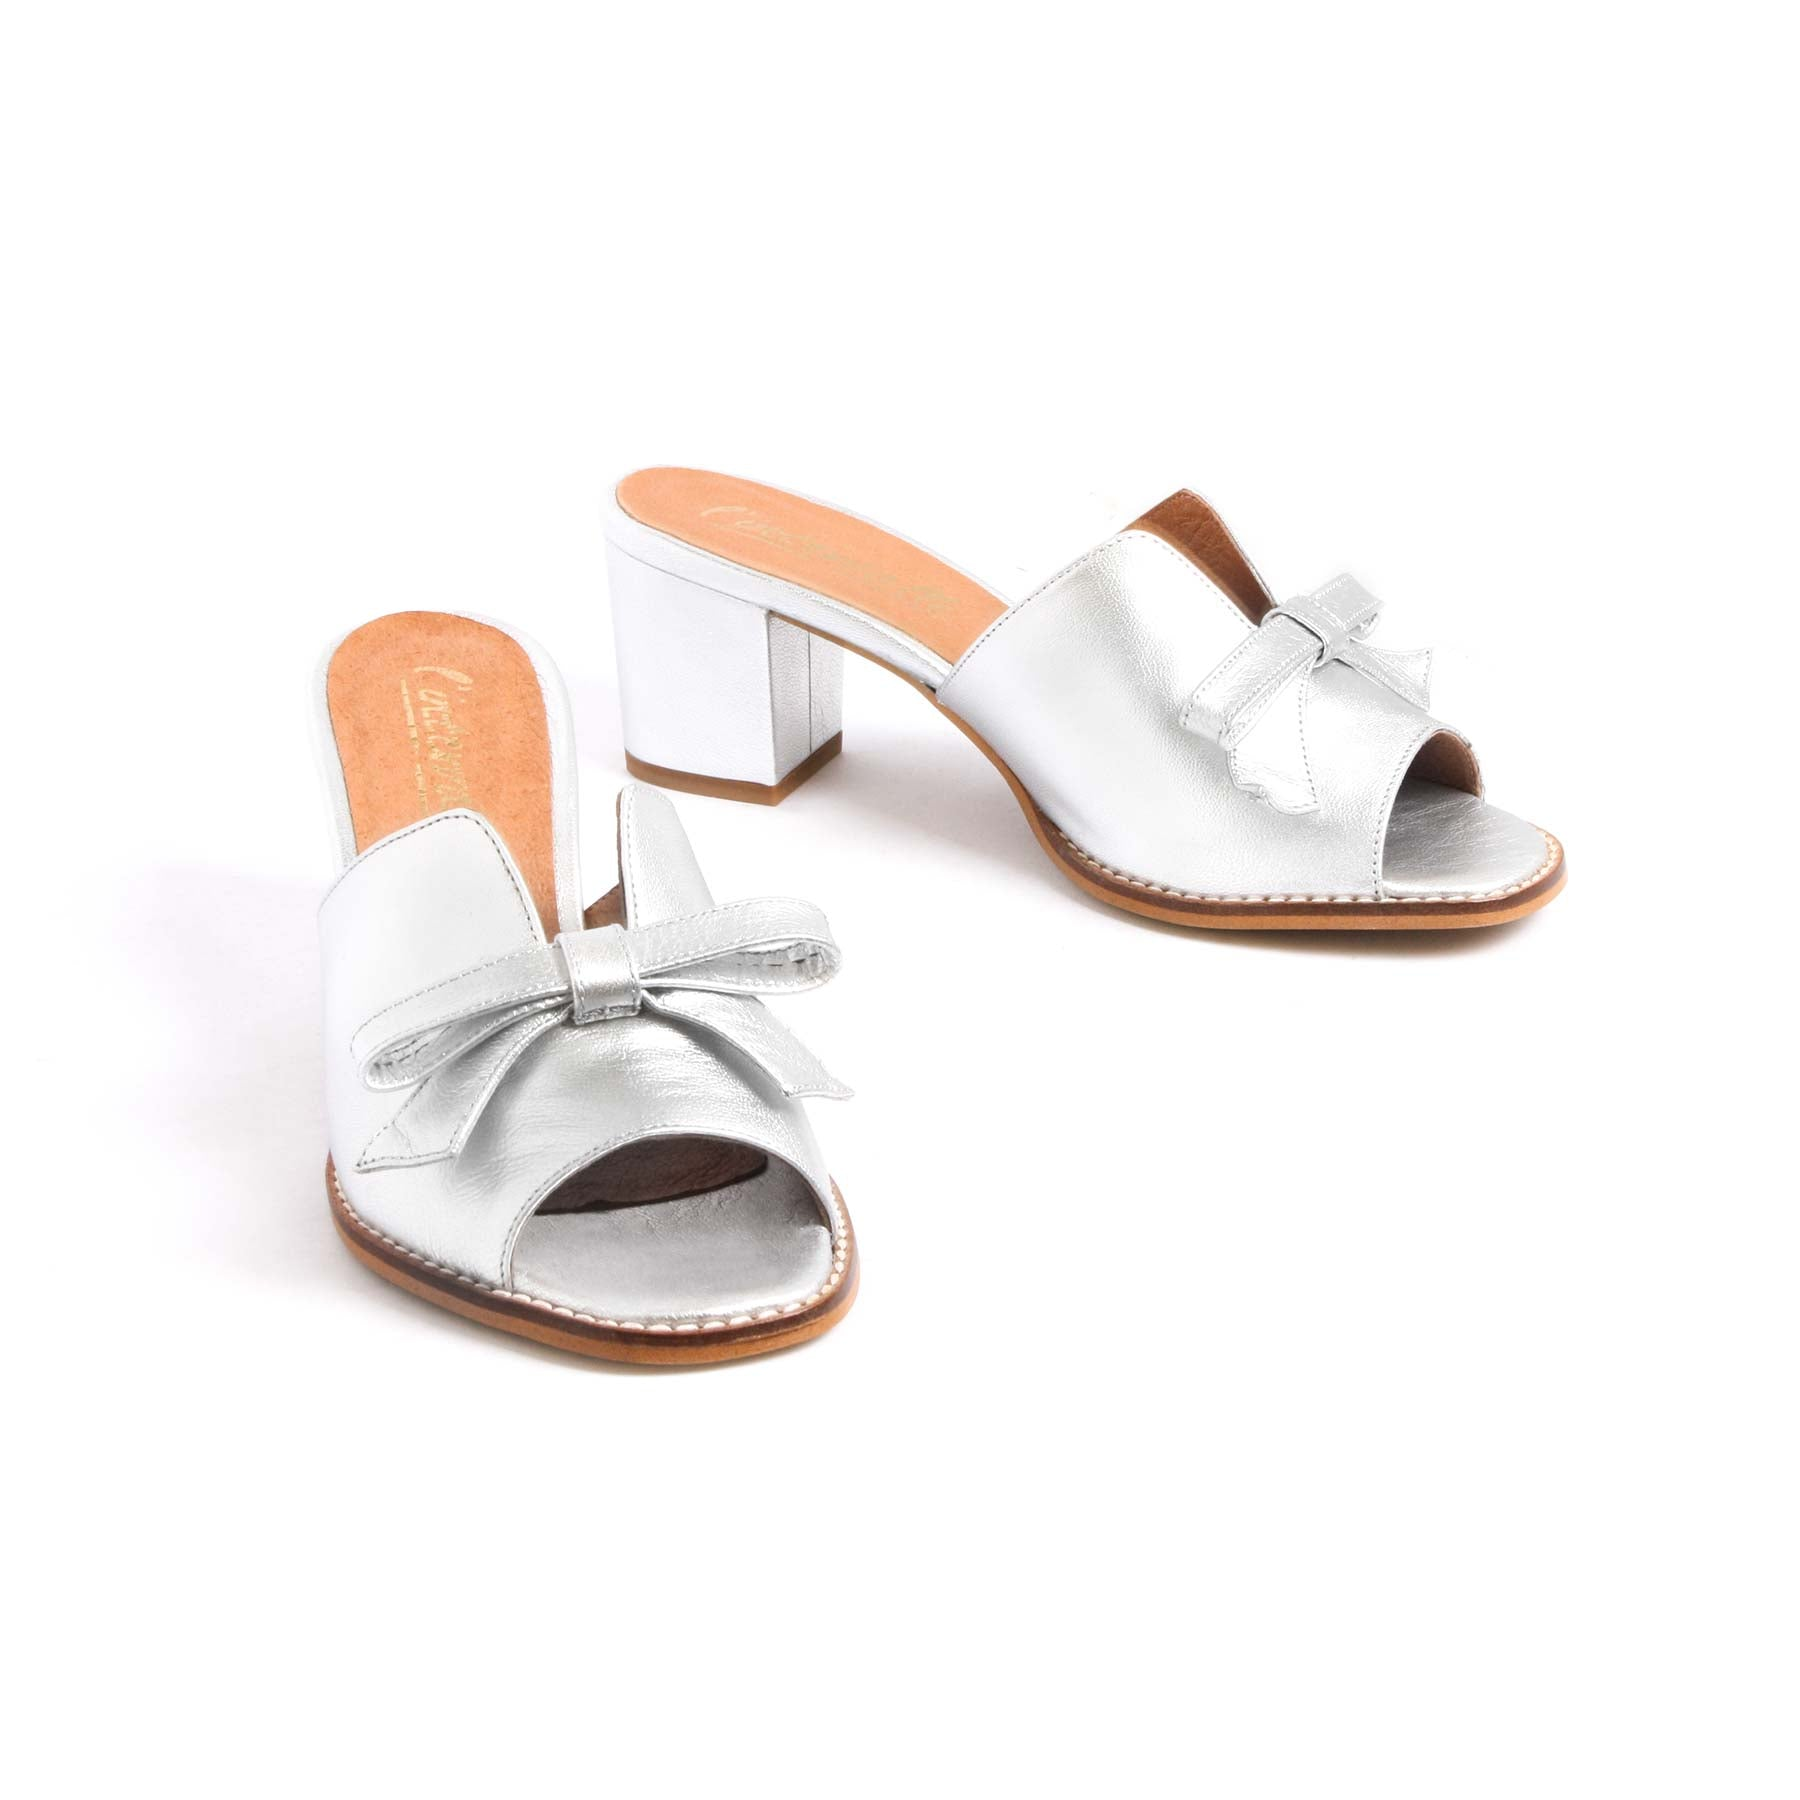 Mules, Fasmin Silver Leather - Lintervalle shoes for woman